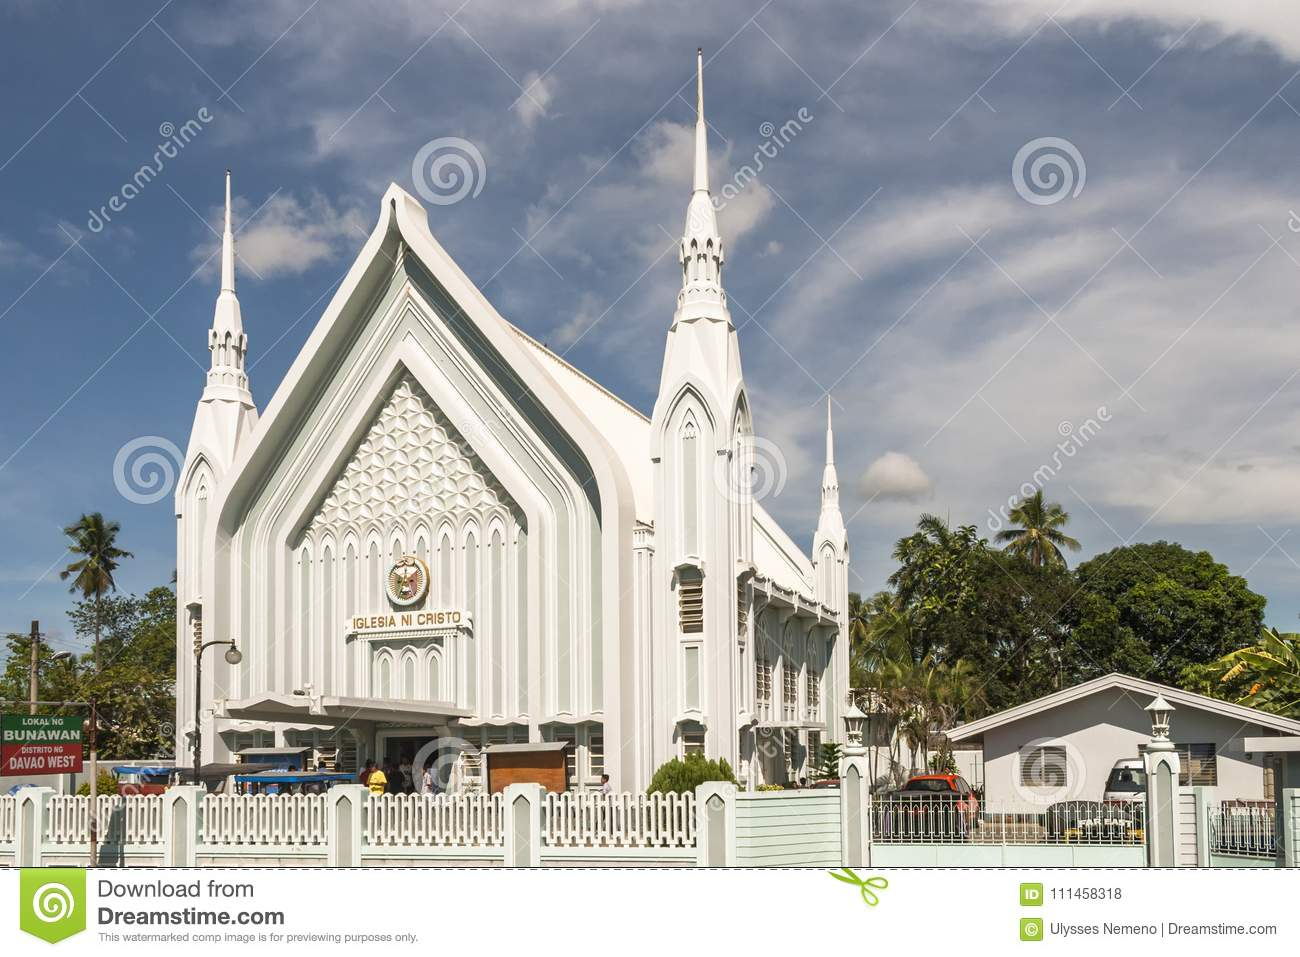 Ni a clipart image black and white download Iglesia ni cristo clipart 1 » Clipart Station image black and white download